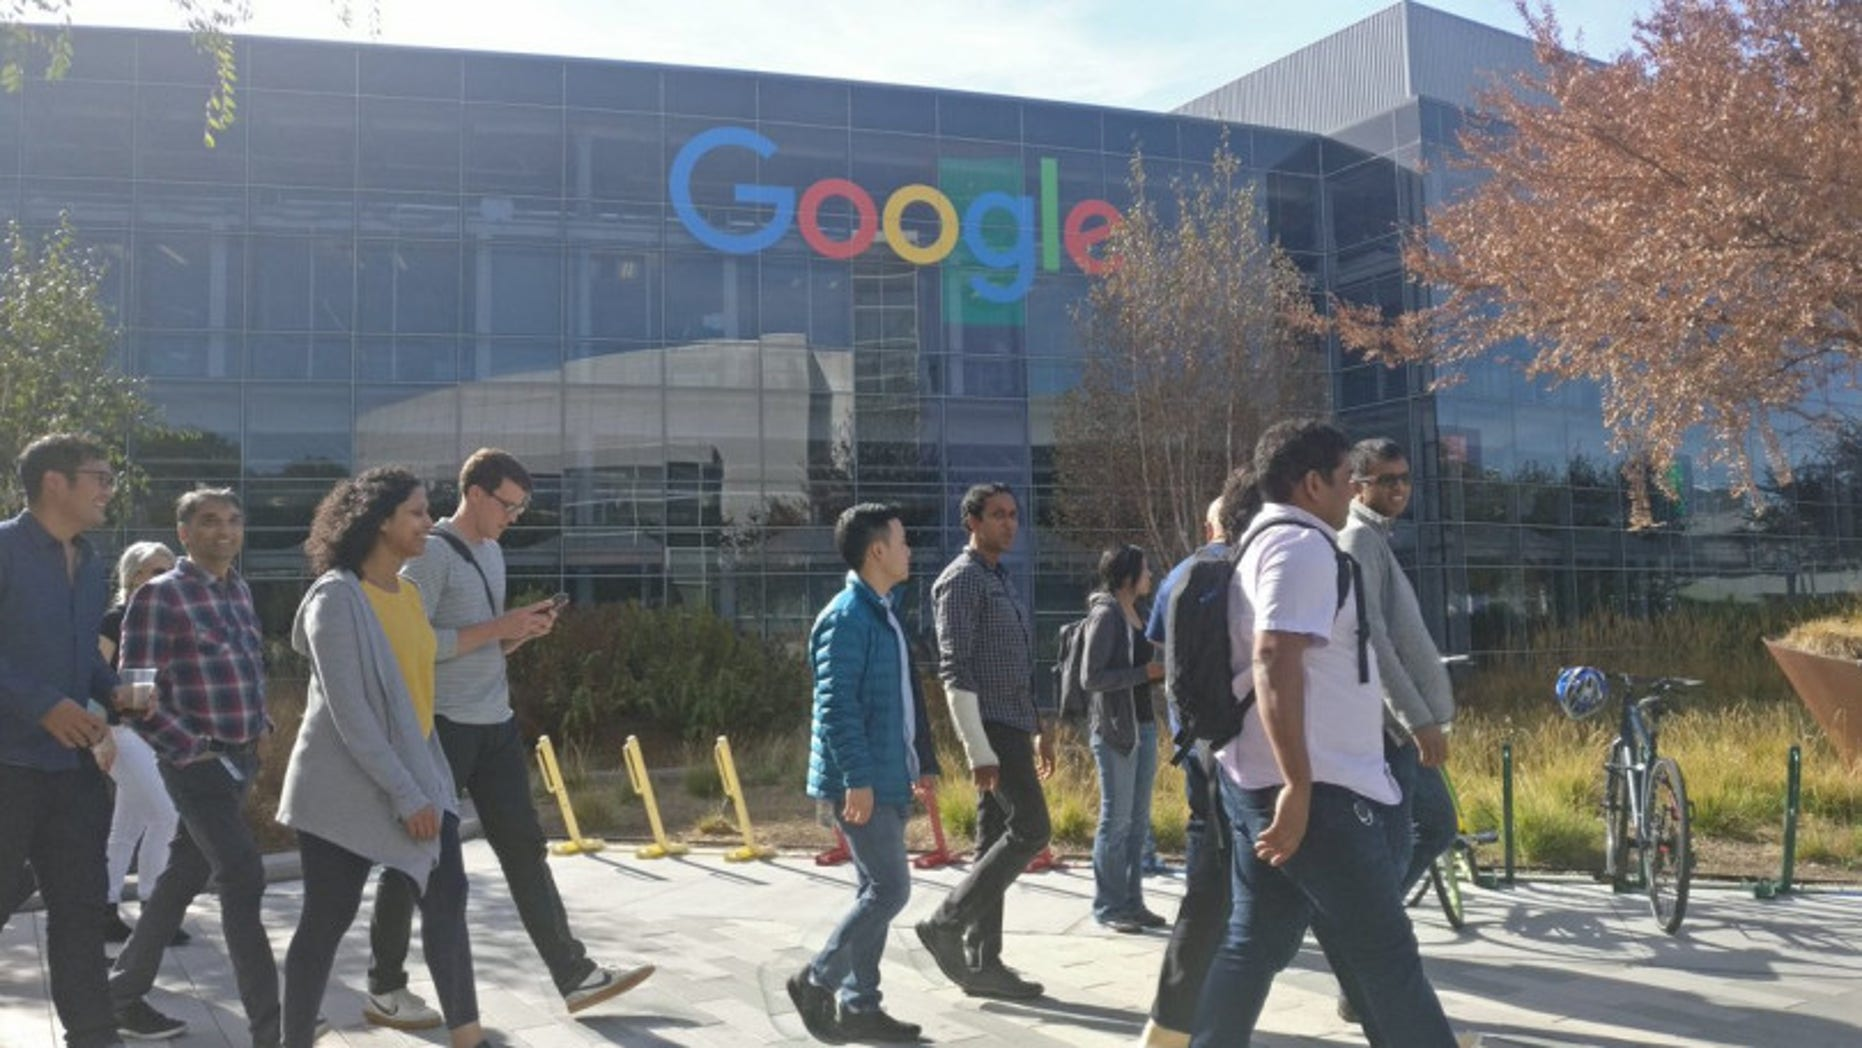 Measles case reported at Google's headquarters